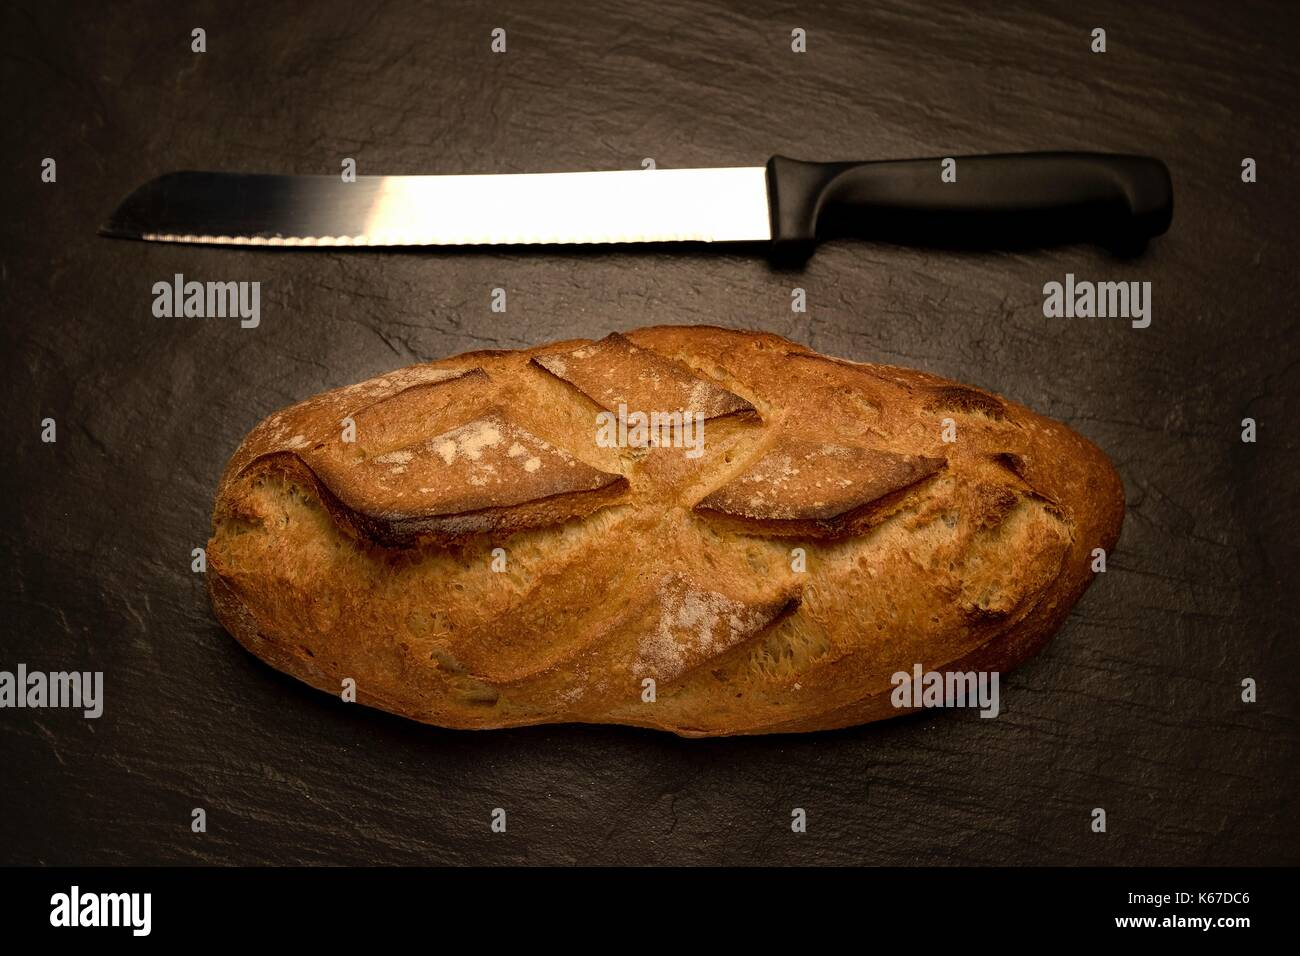 Loaf of bread with a bread knife - Stock Image